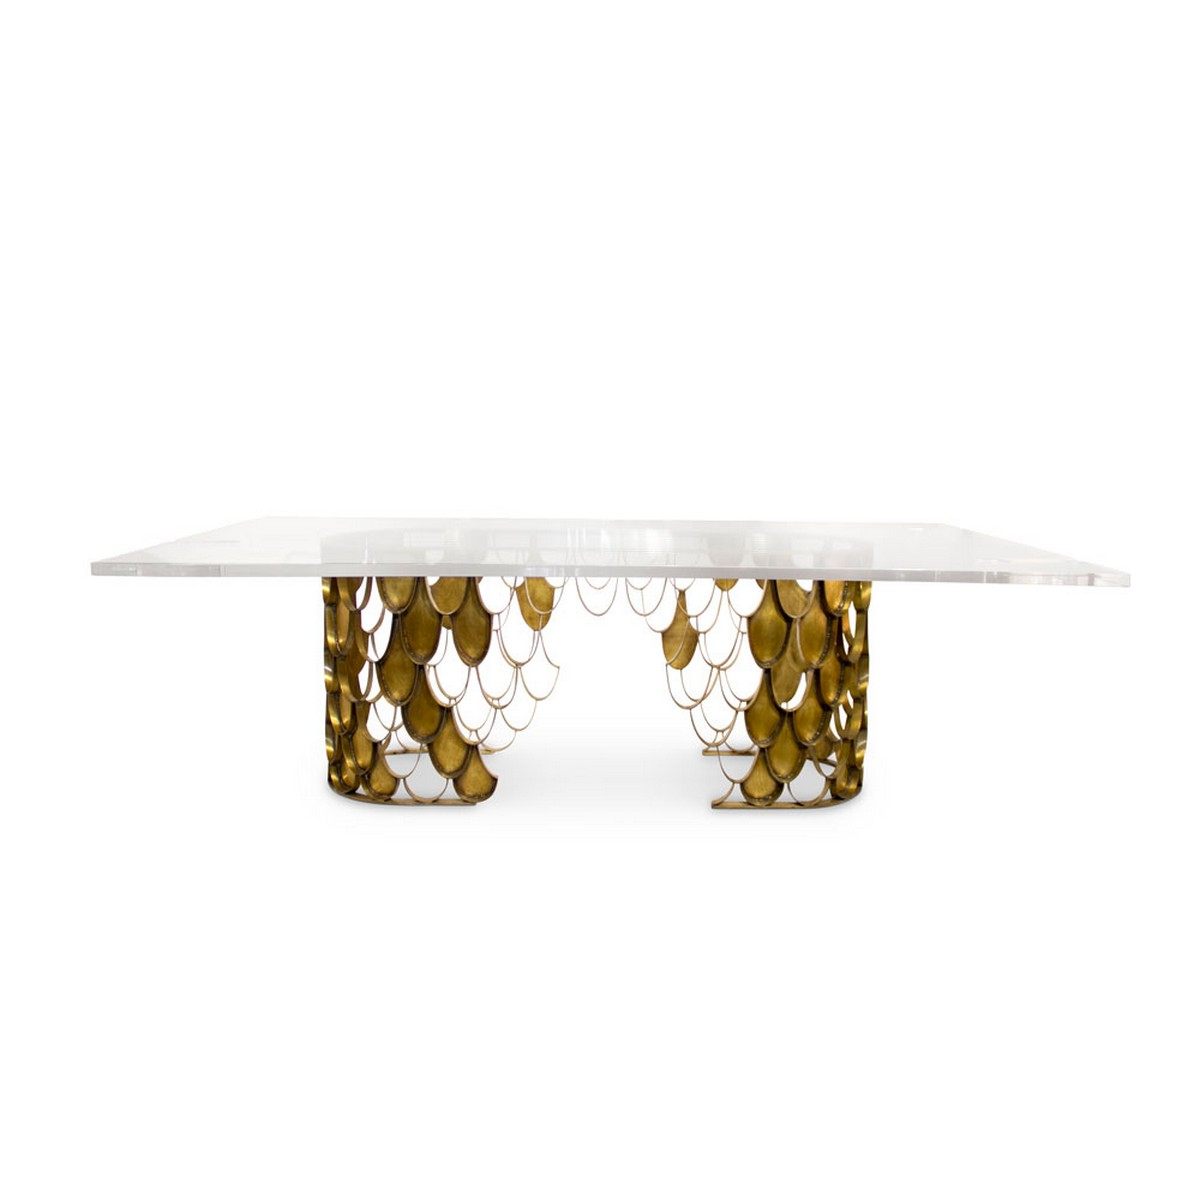 Artistic Dining Table Ideas For An Exquisite Dining Room Decor (Part II)  Artistic Dining Table Ideas For An Exquisite Dining Room Decor (Part II) bb